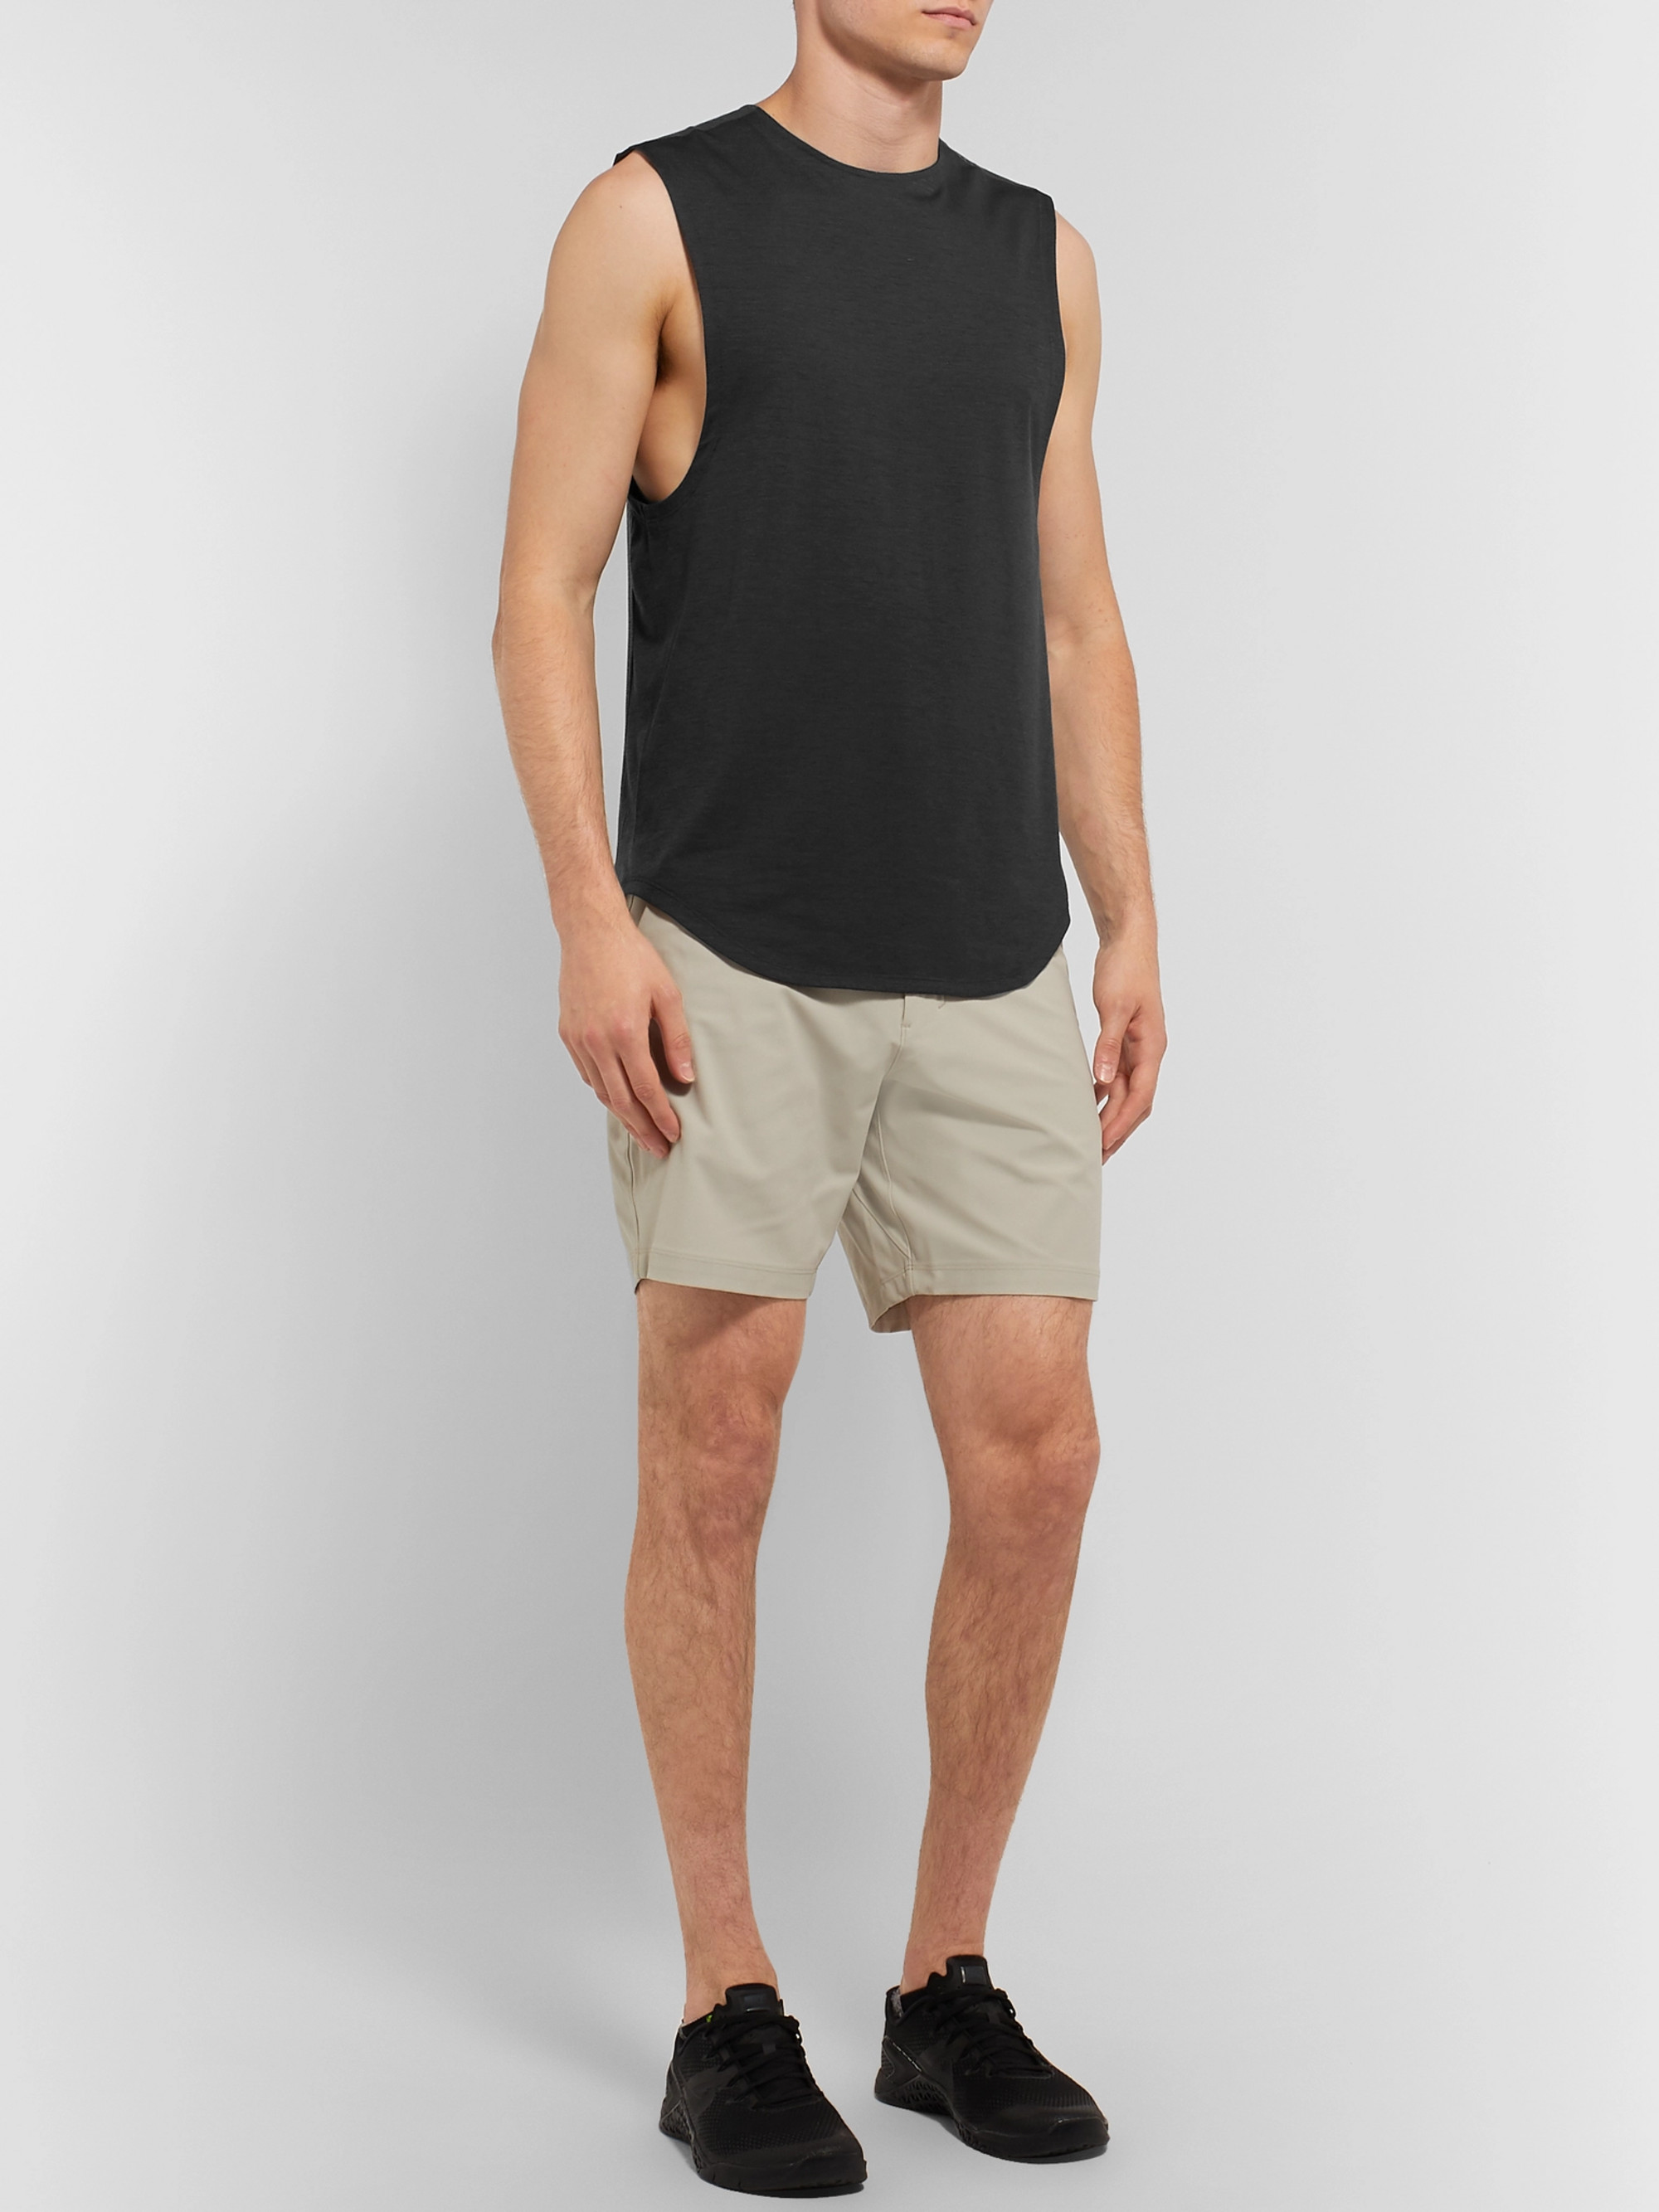 Lululemon Always Agile Tank Top